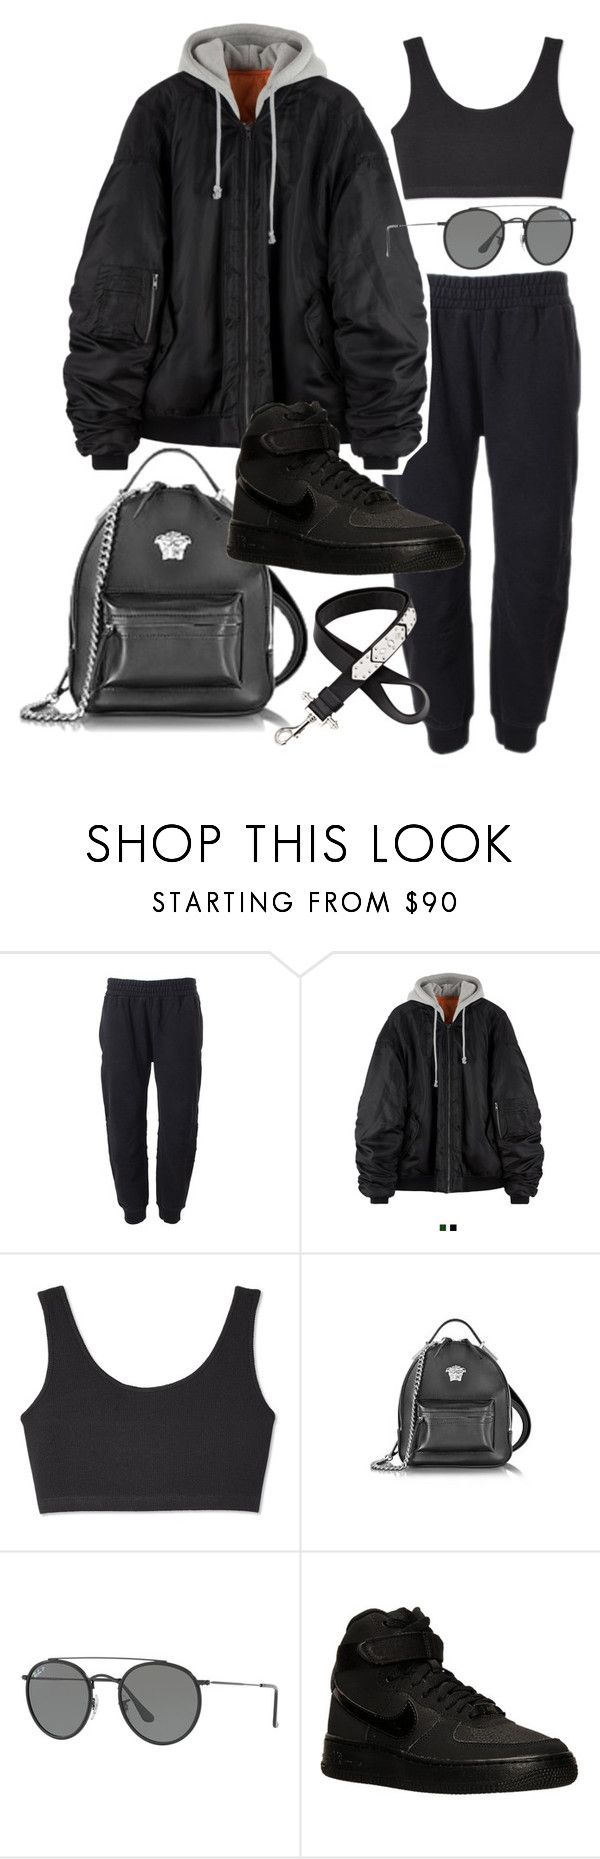 """Untitled #21929"" by florencia95 ❤ liked on Polyvore featuring adidas Originals, Yeezy by Kanye West, Versace, Ray-Ban, NIKE and Givenchy"